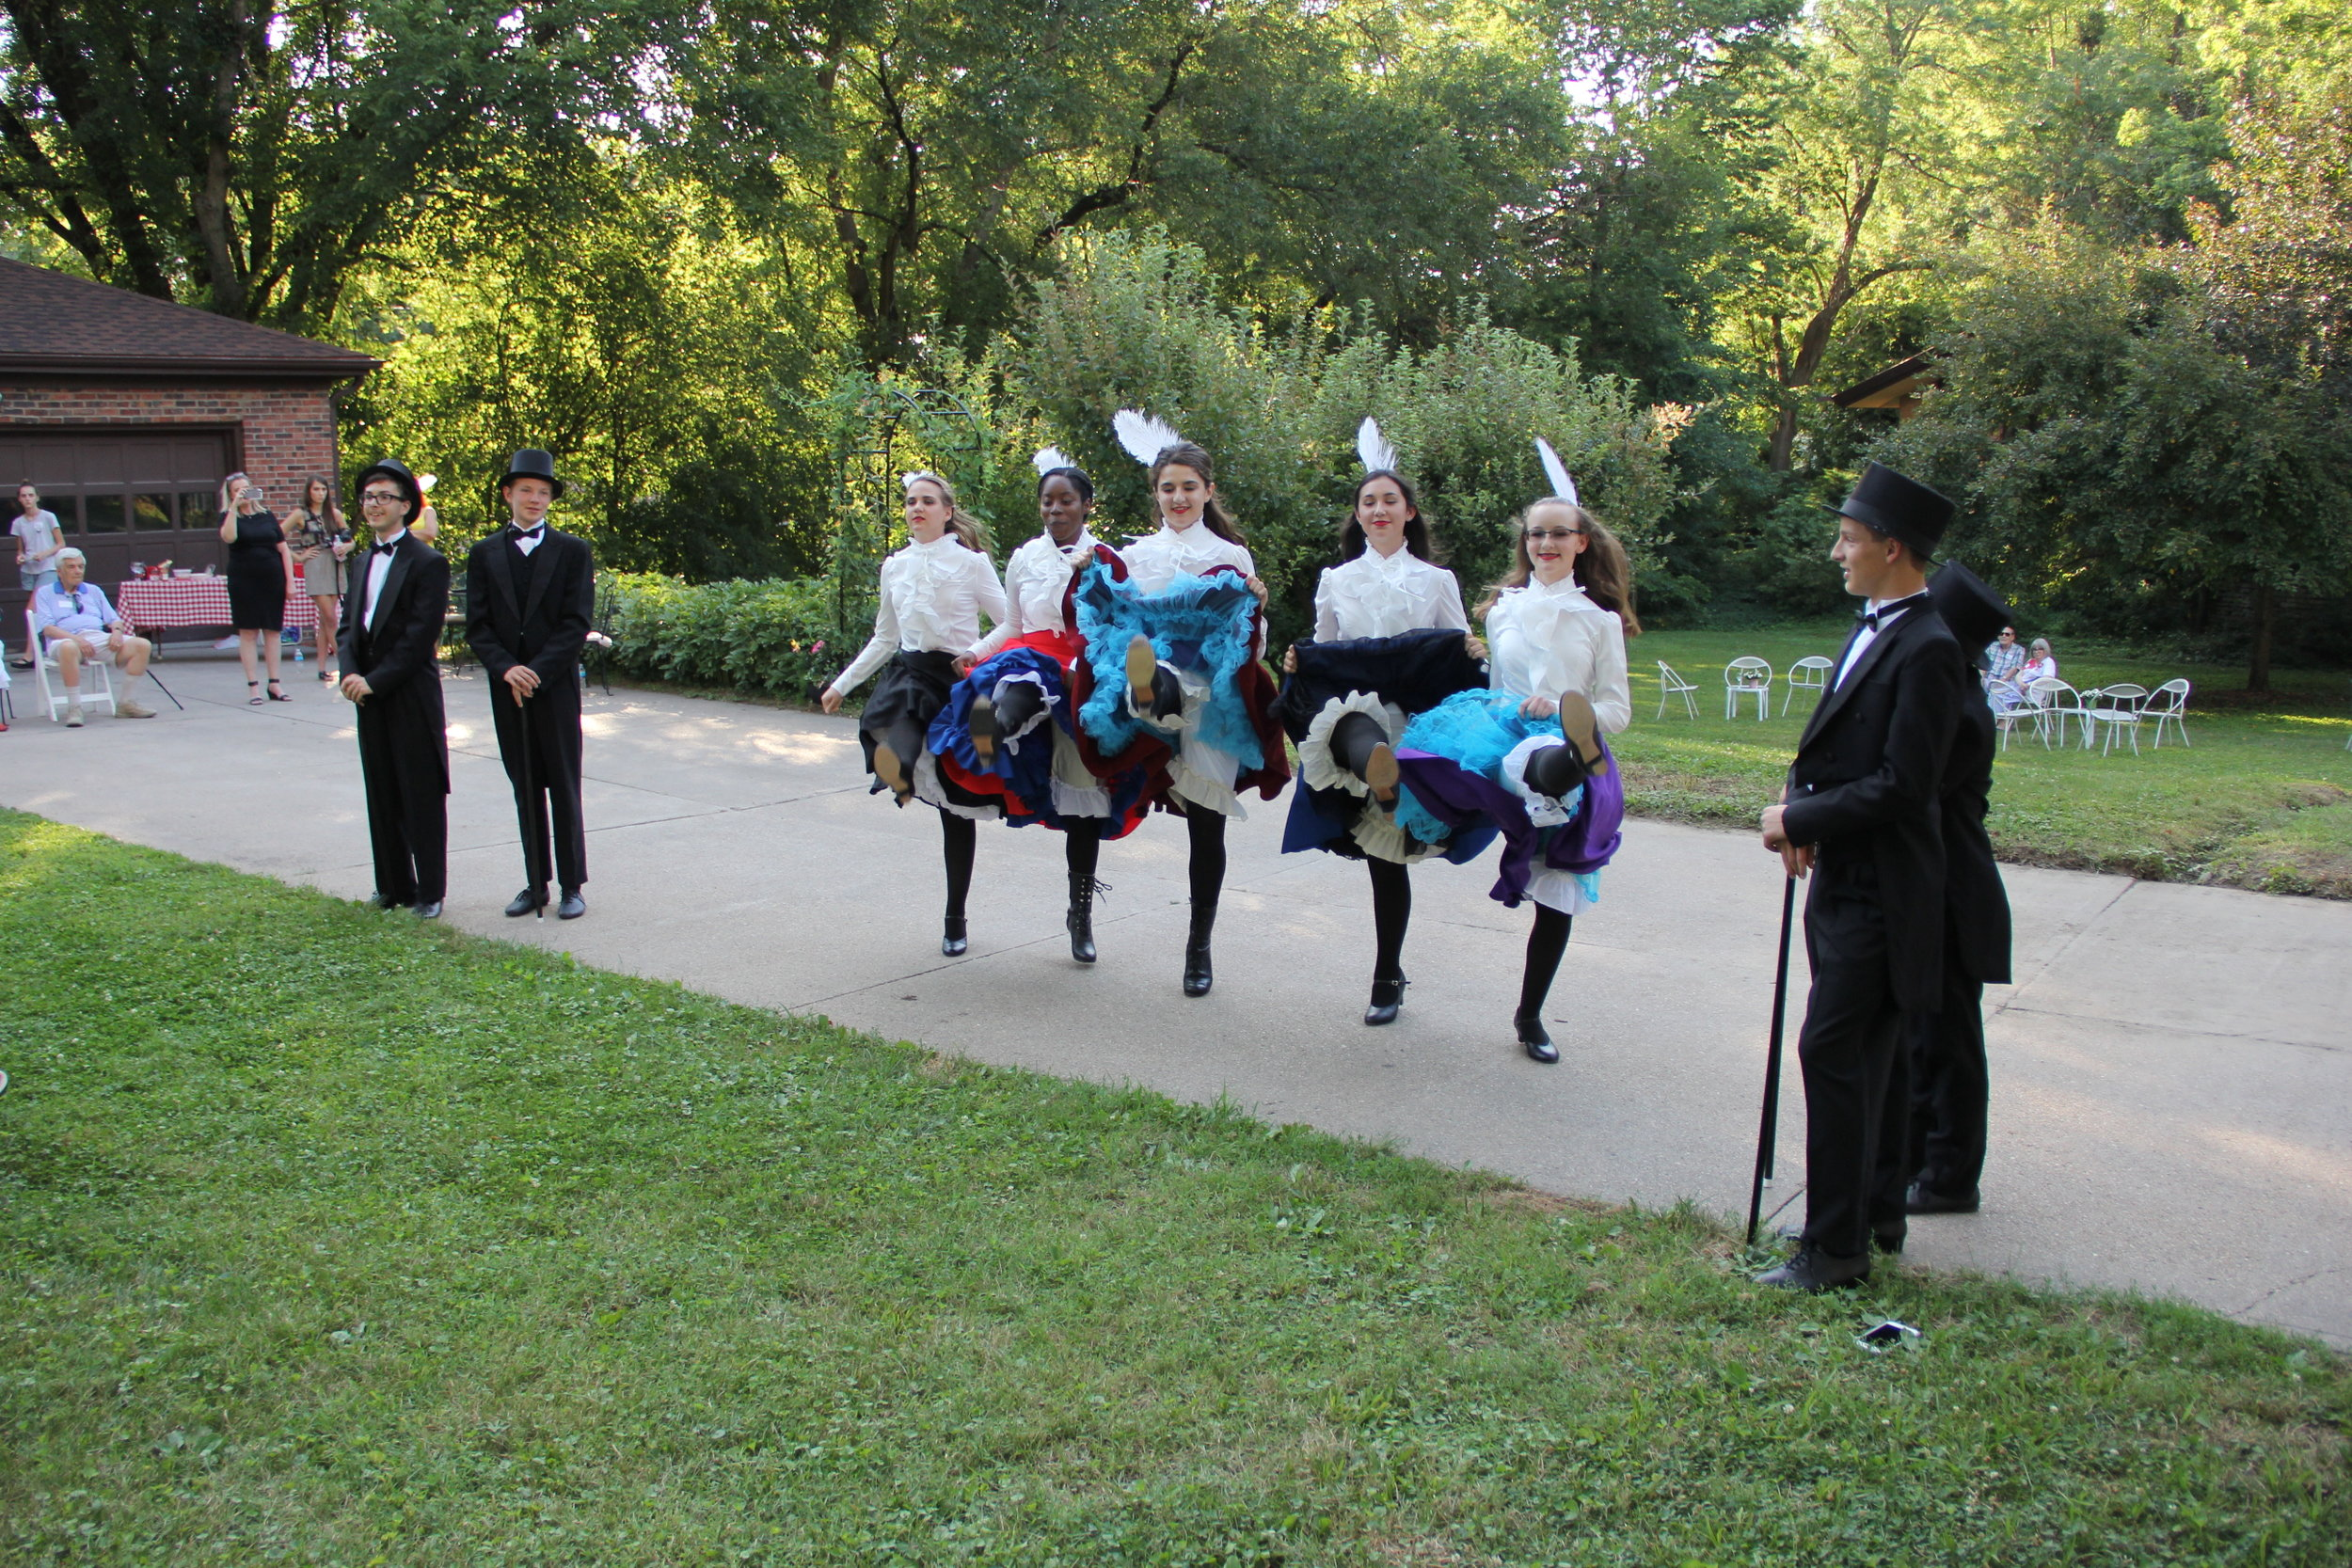 No Bastille Day is complete without traditional can-can dancers! They were marvelous!